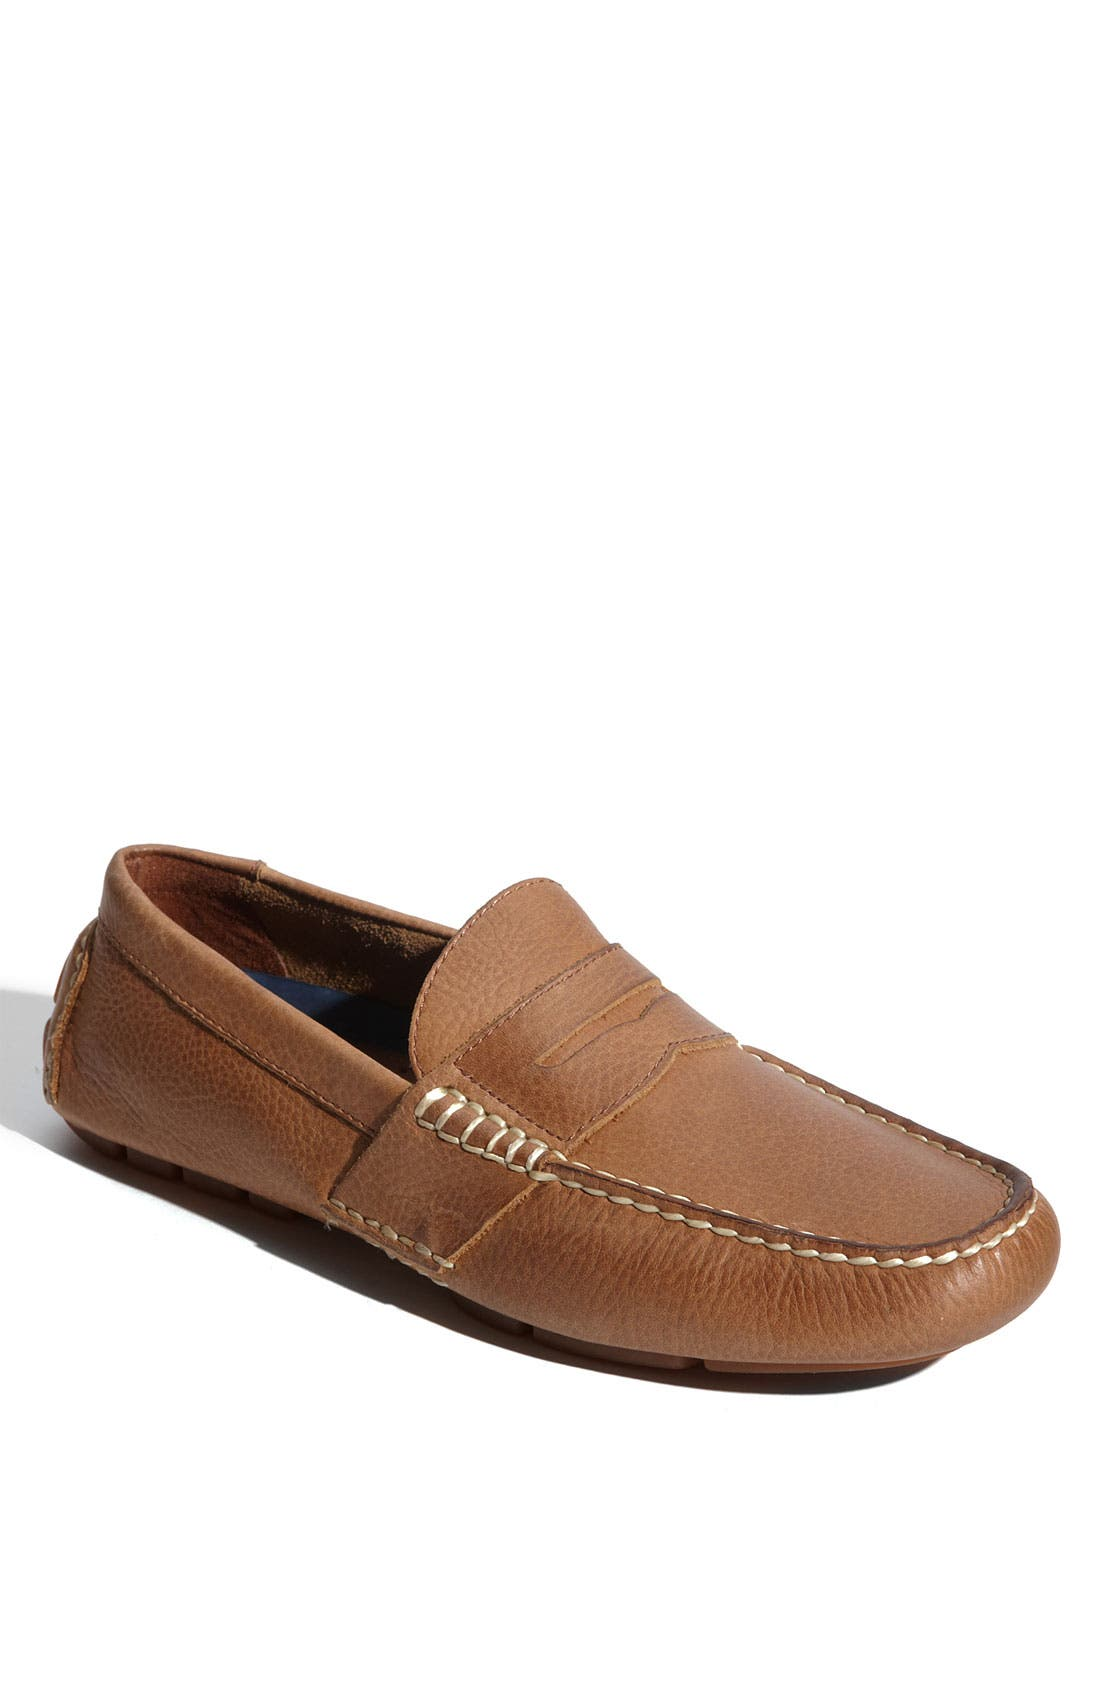 Alternate Image 1 Selected - Polo Ralph Lauren 'Telly' Driving Loafer